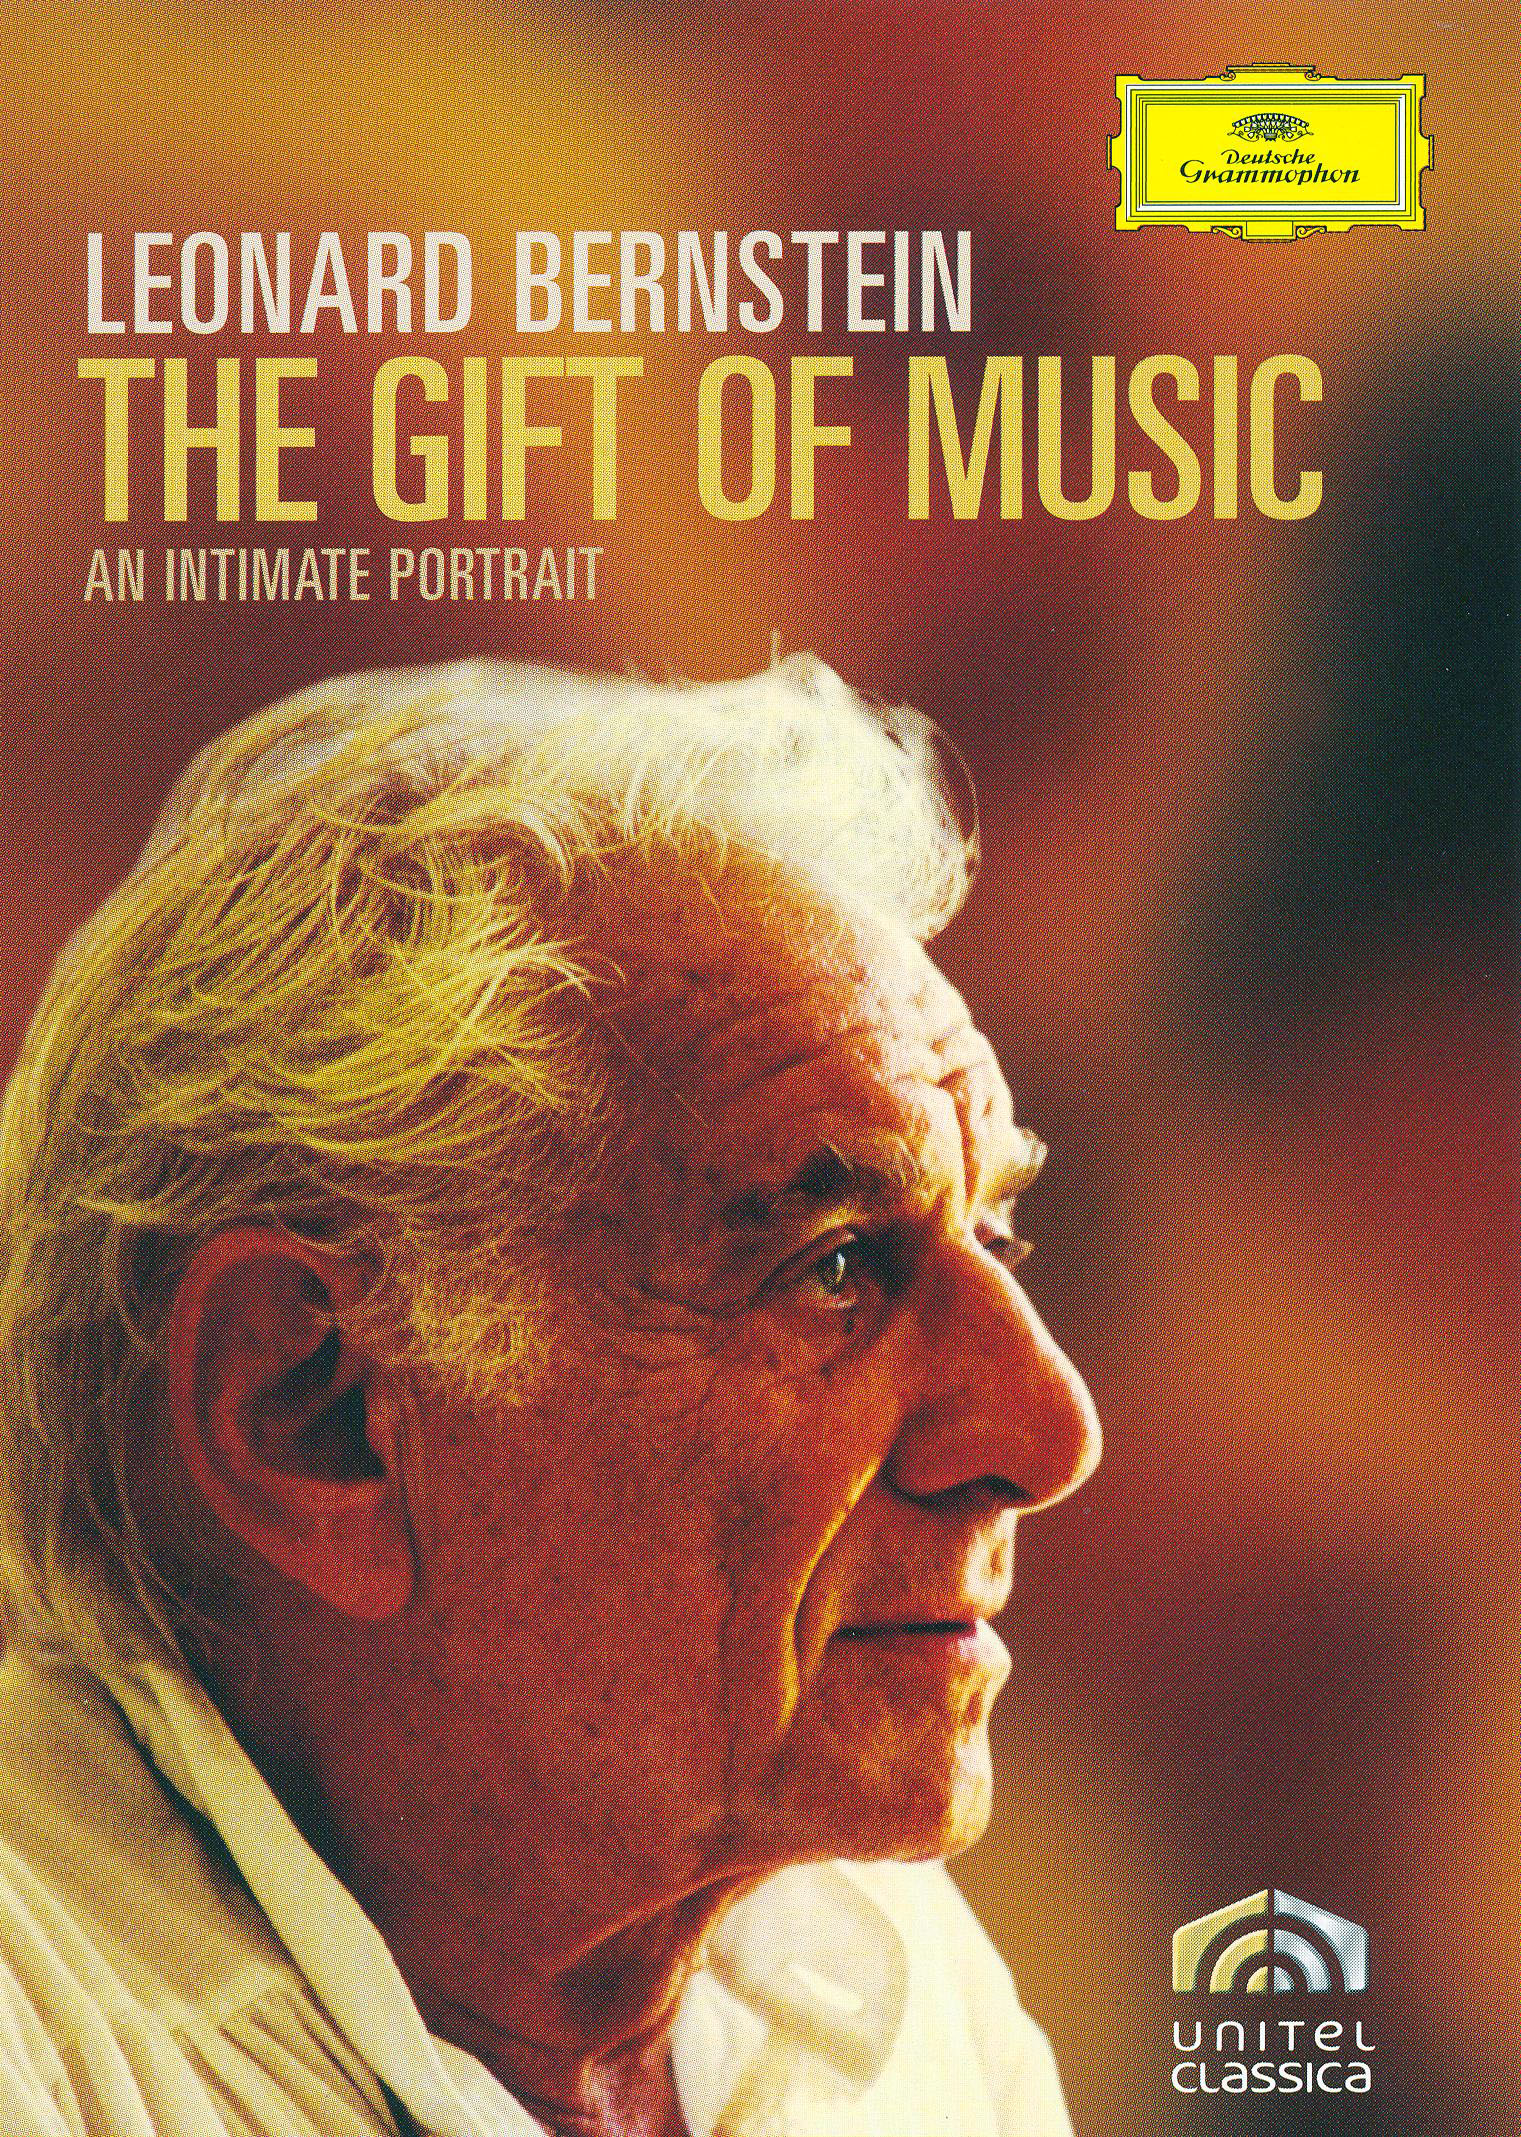 Leonard Bernstein: The Gift of Music